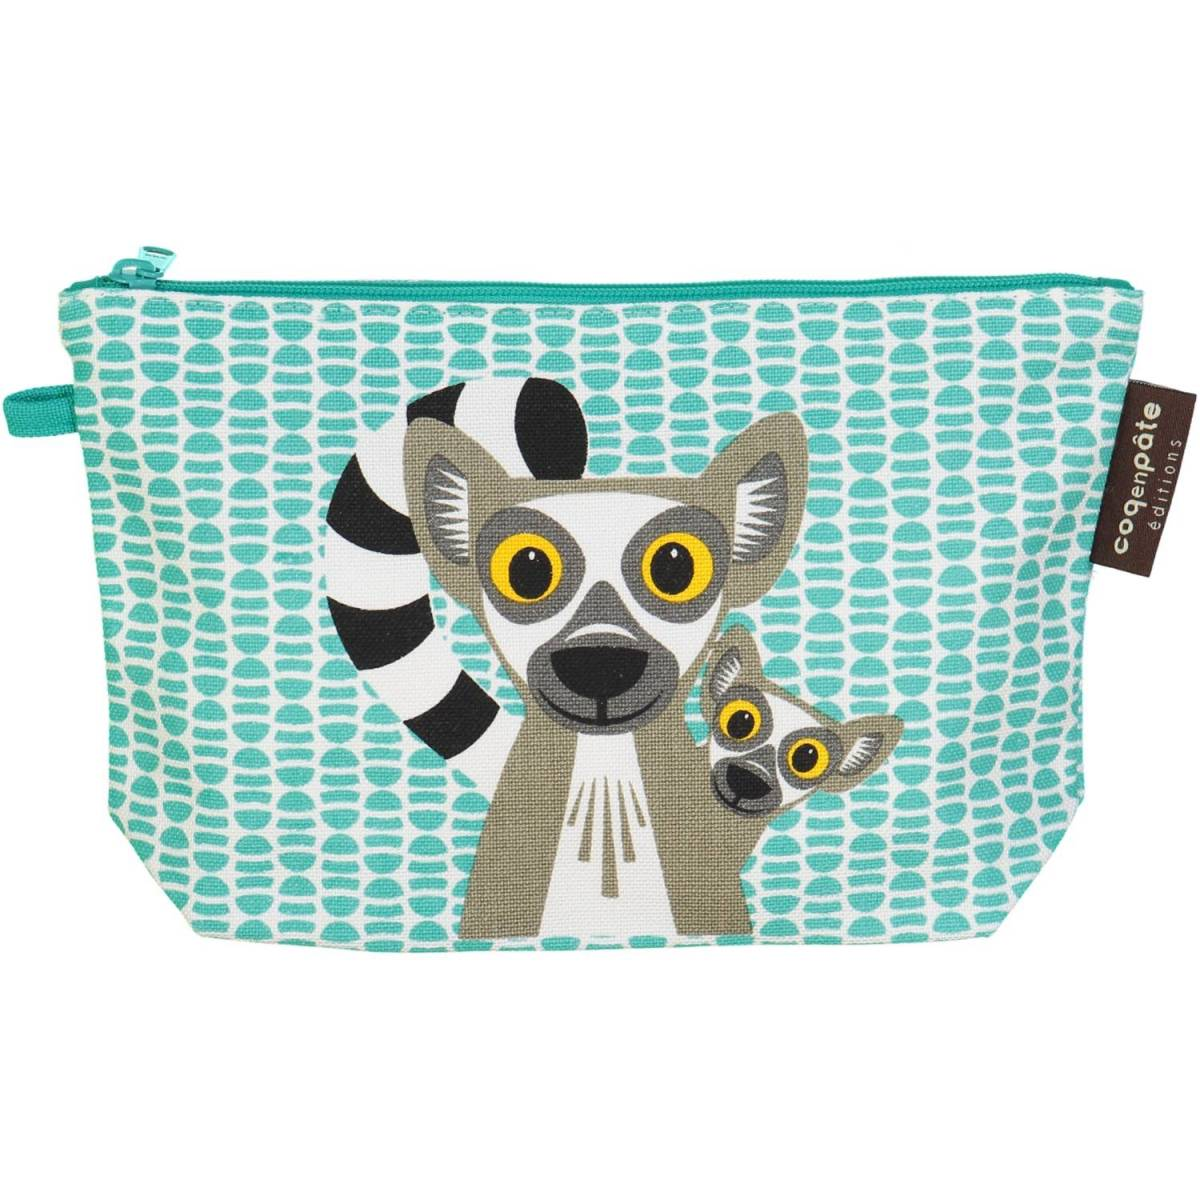 Lemur pencil case